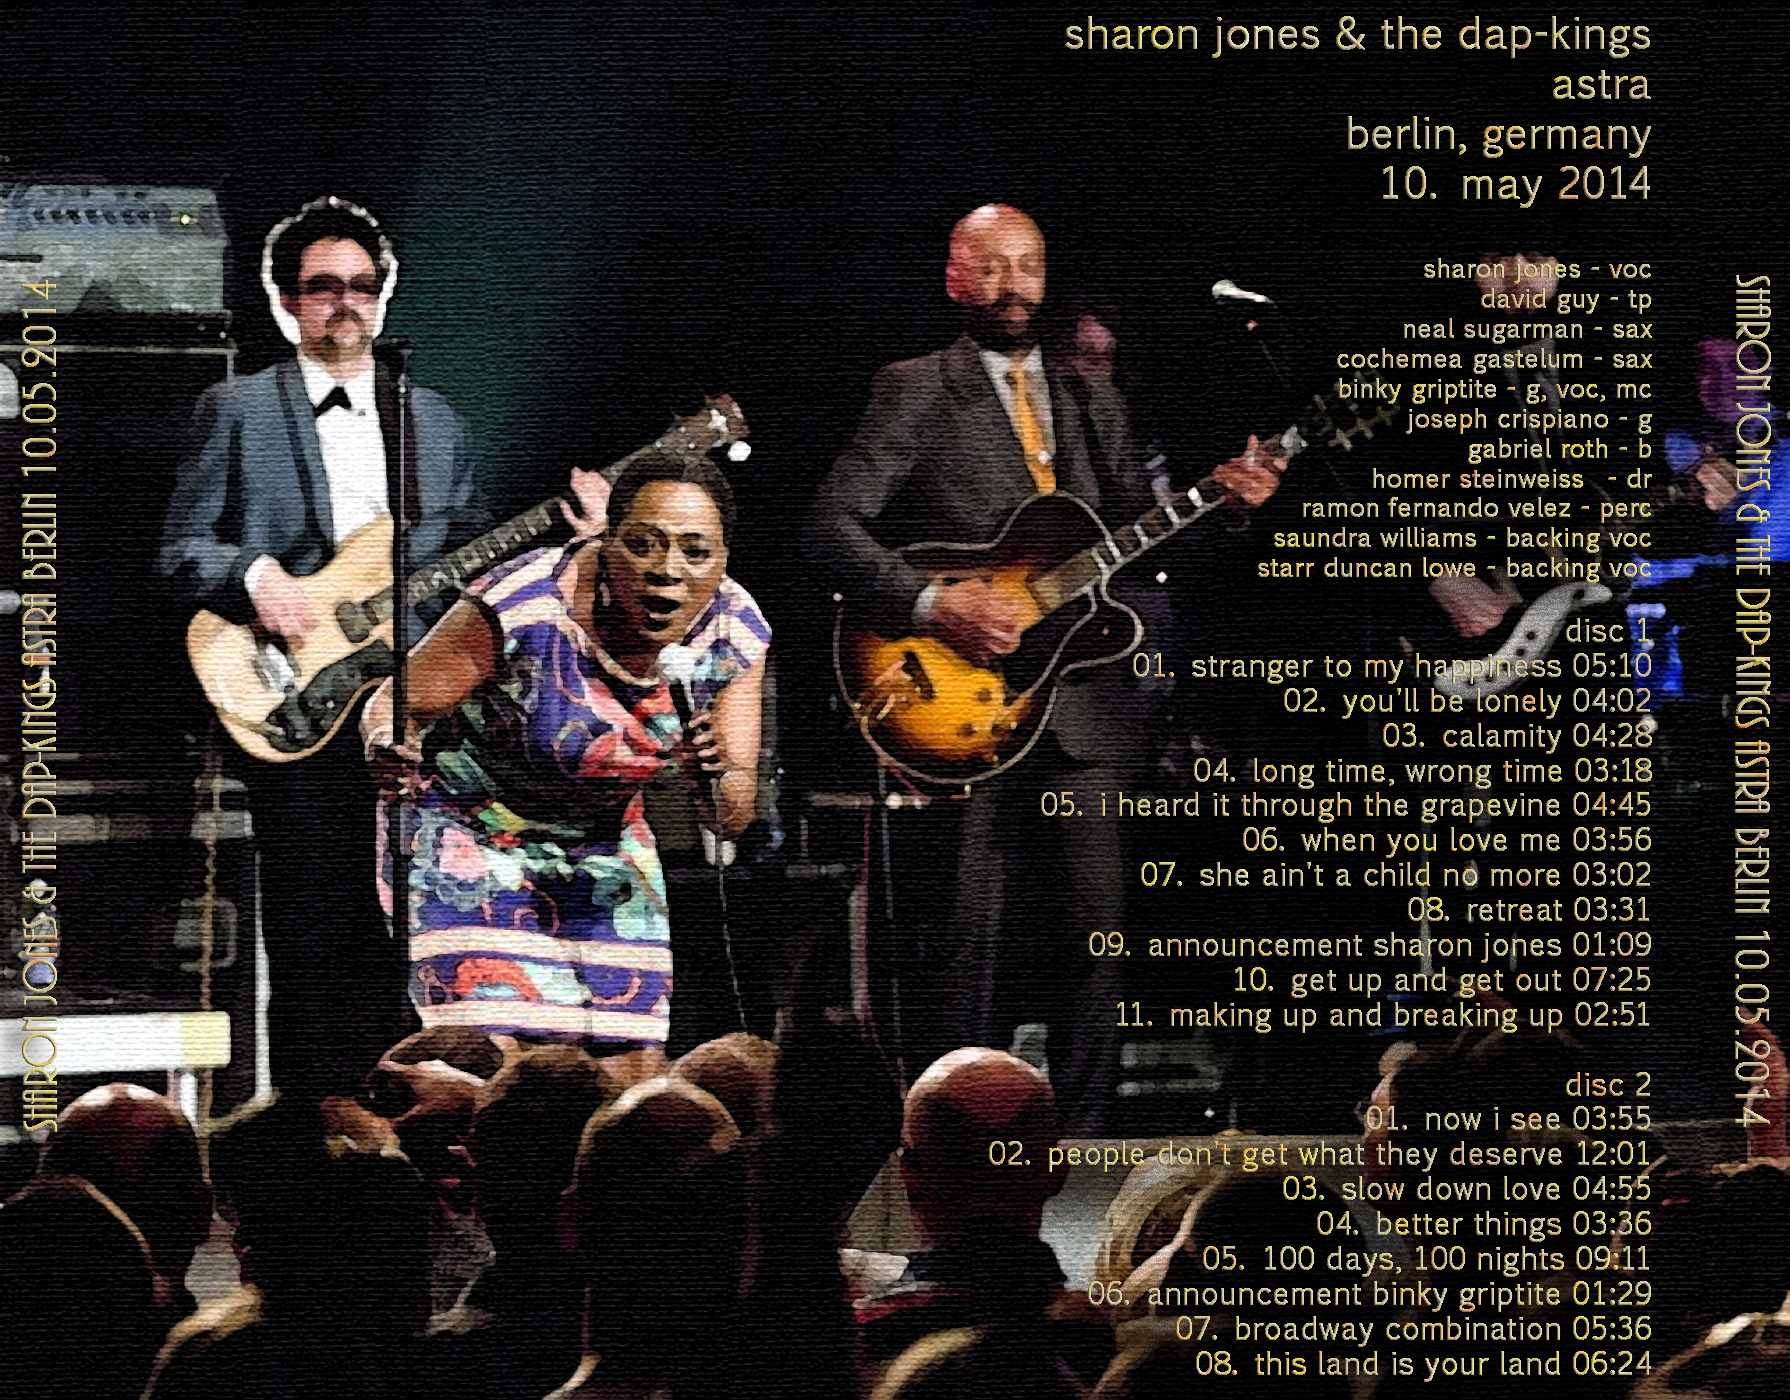 SharonJonesAndTheDapKings2014-05-10AstraBerlinGermany (1).jpg